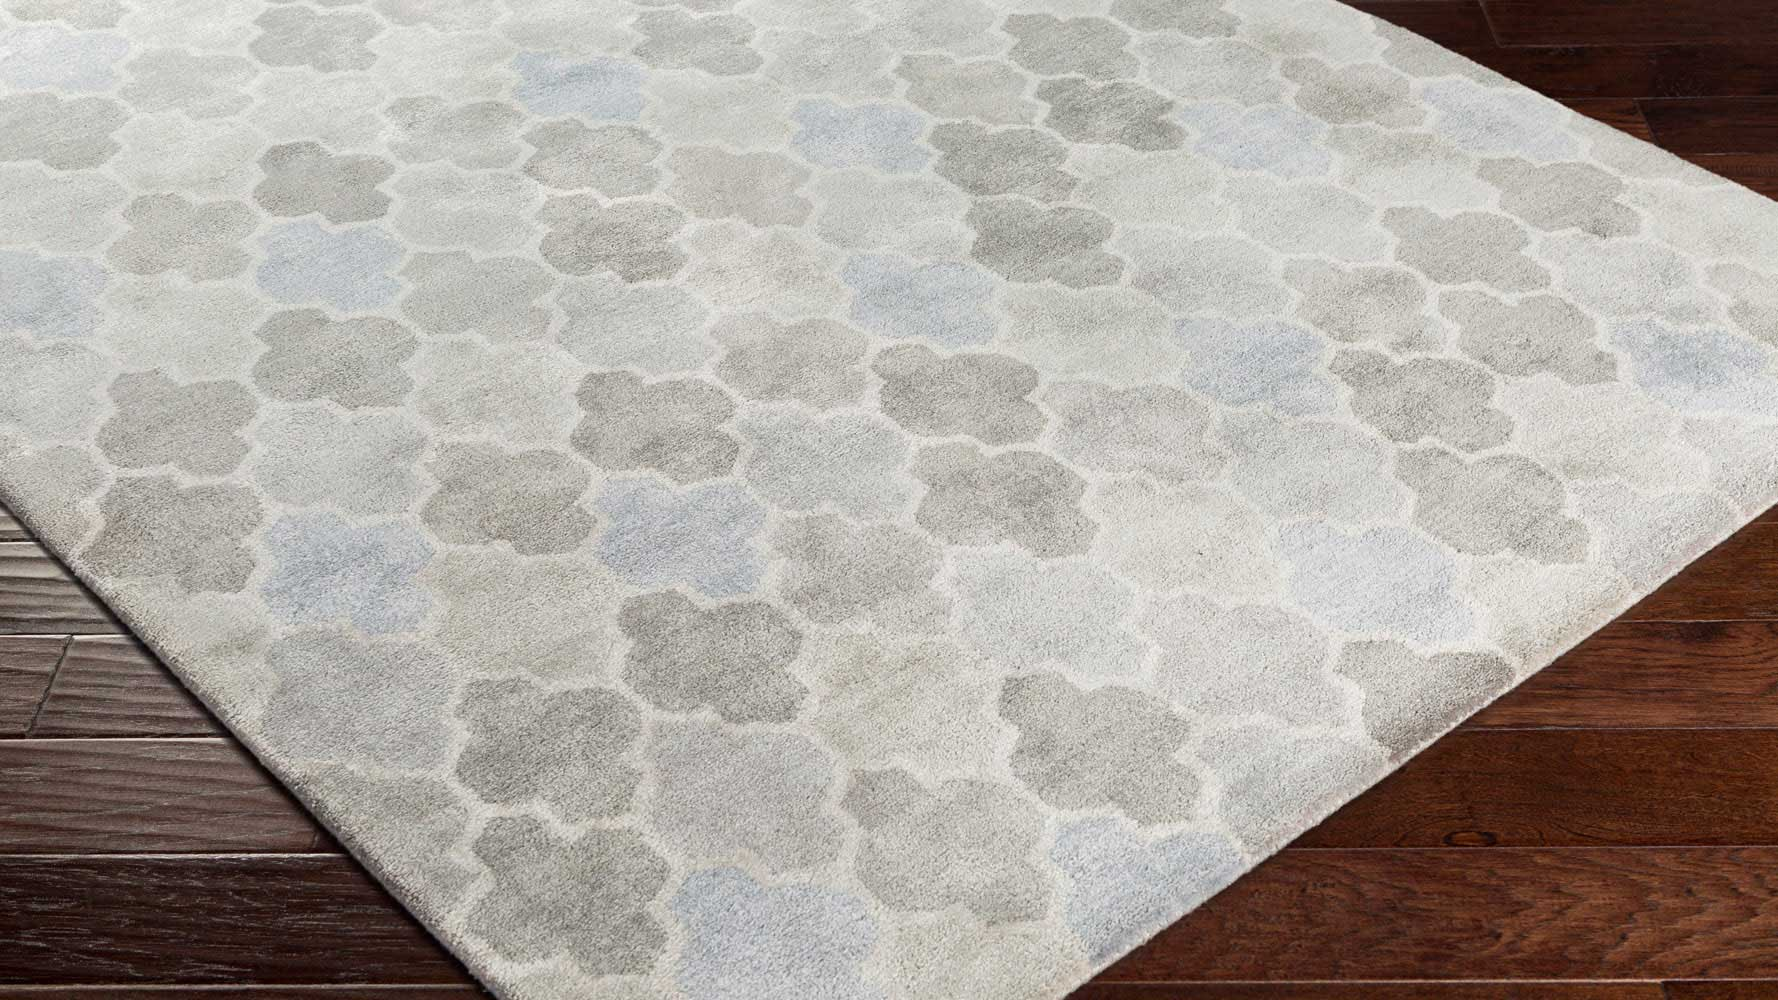 Hand Tufted Brilliance Area Rug Light Gray Slate Pattern